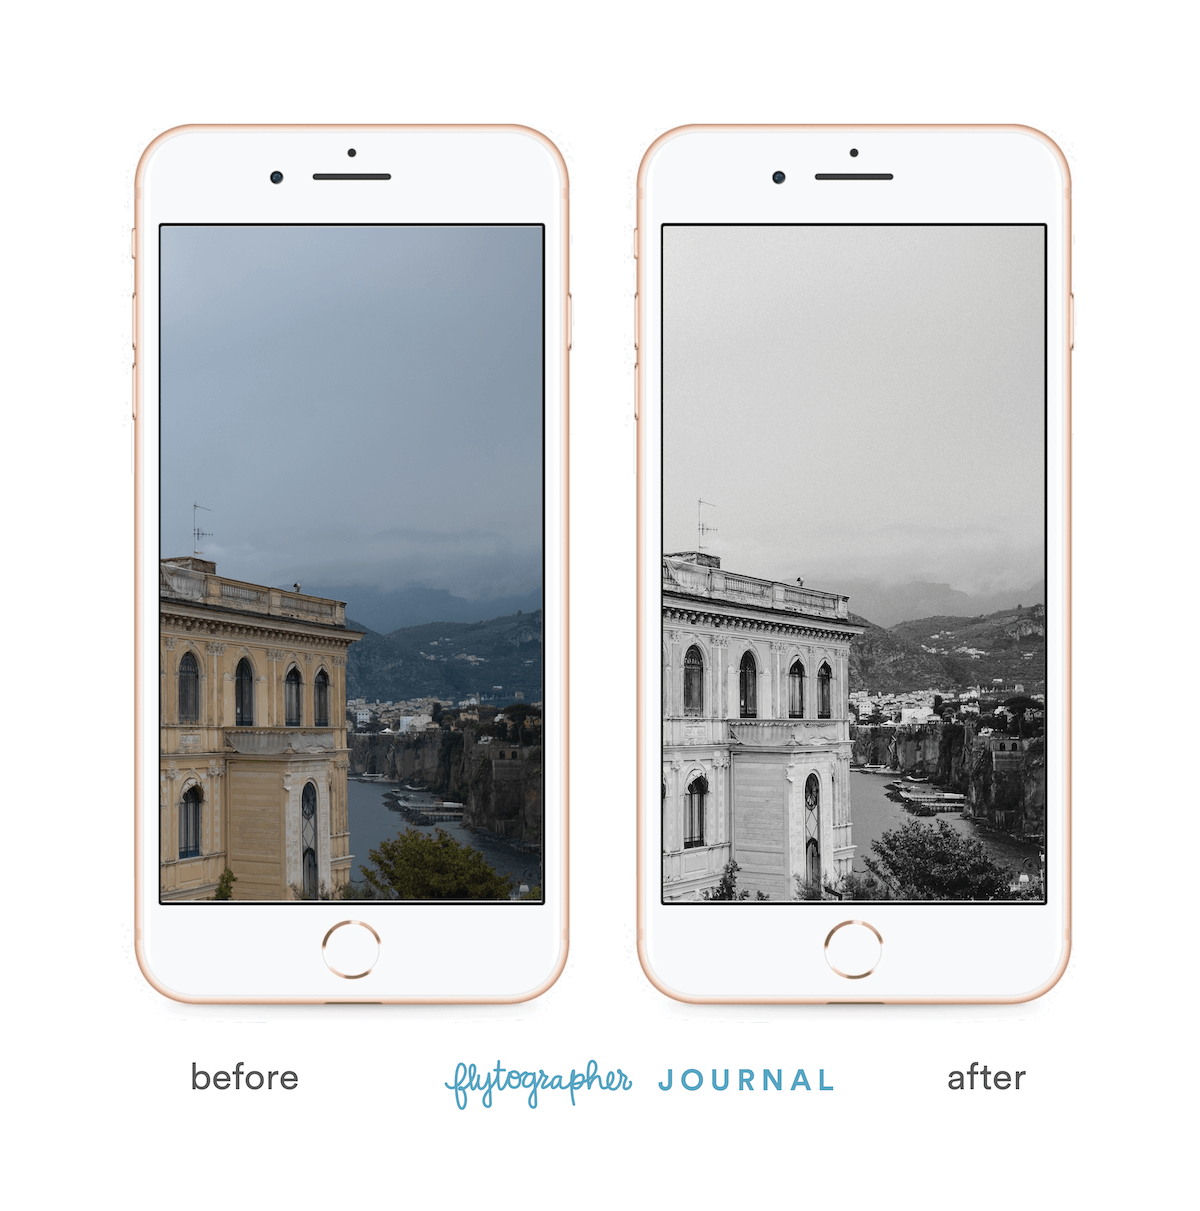 Picture of a building before and after 'Flytographer Journal' preset